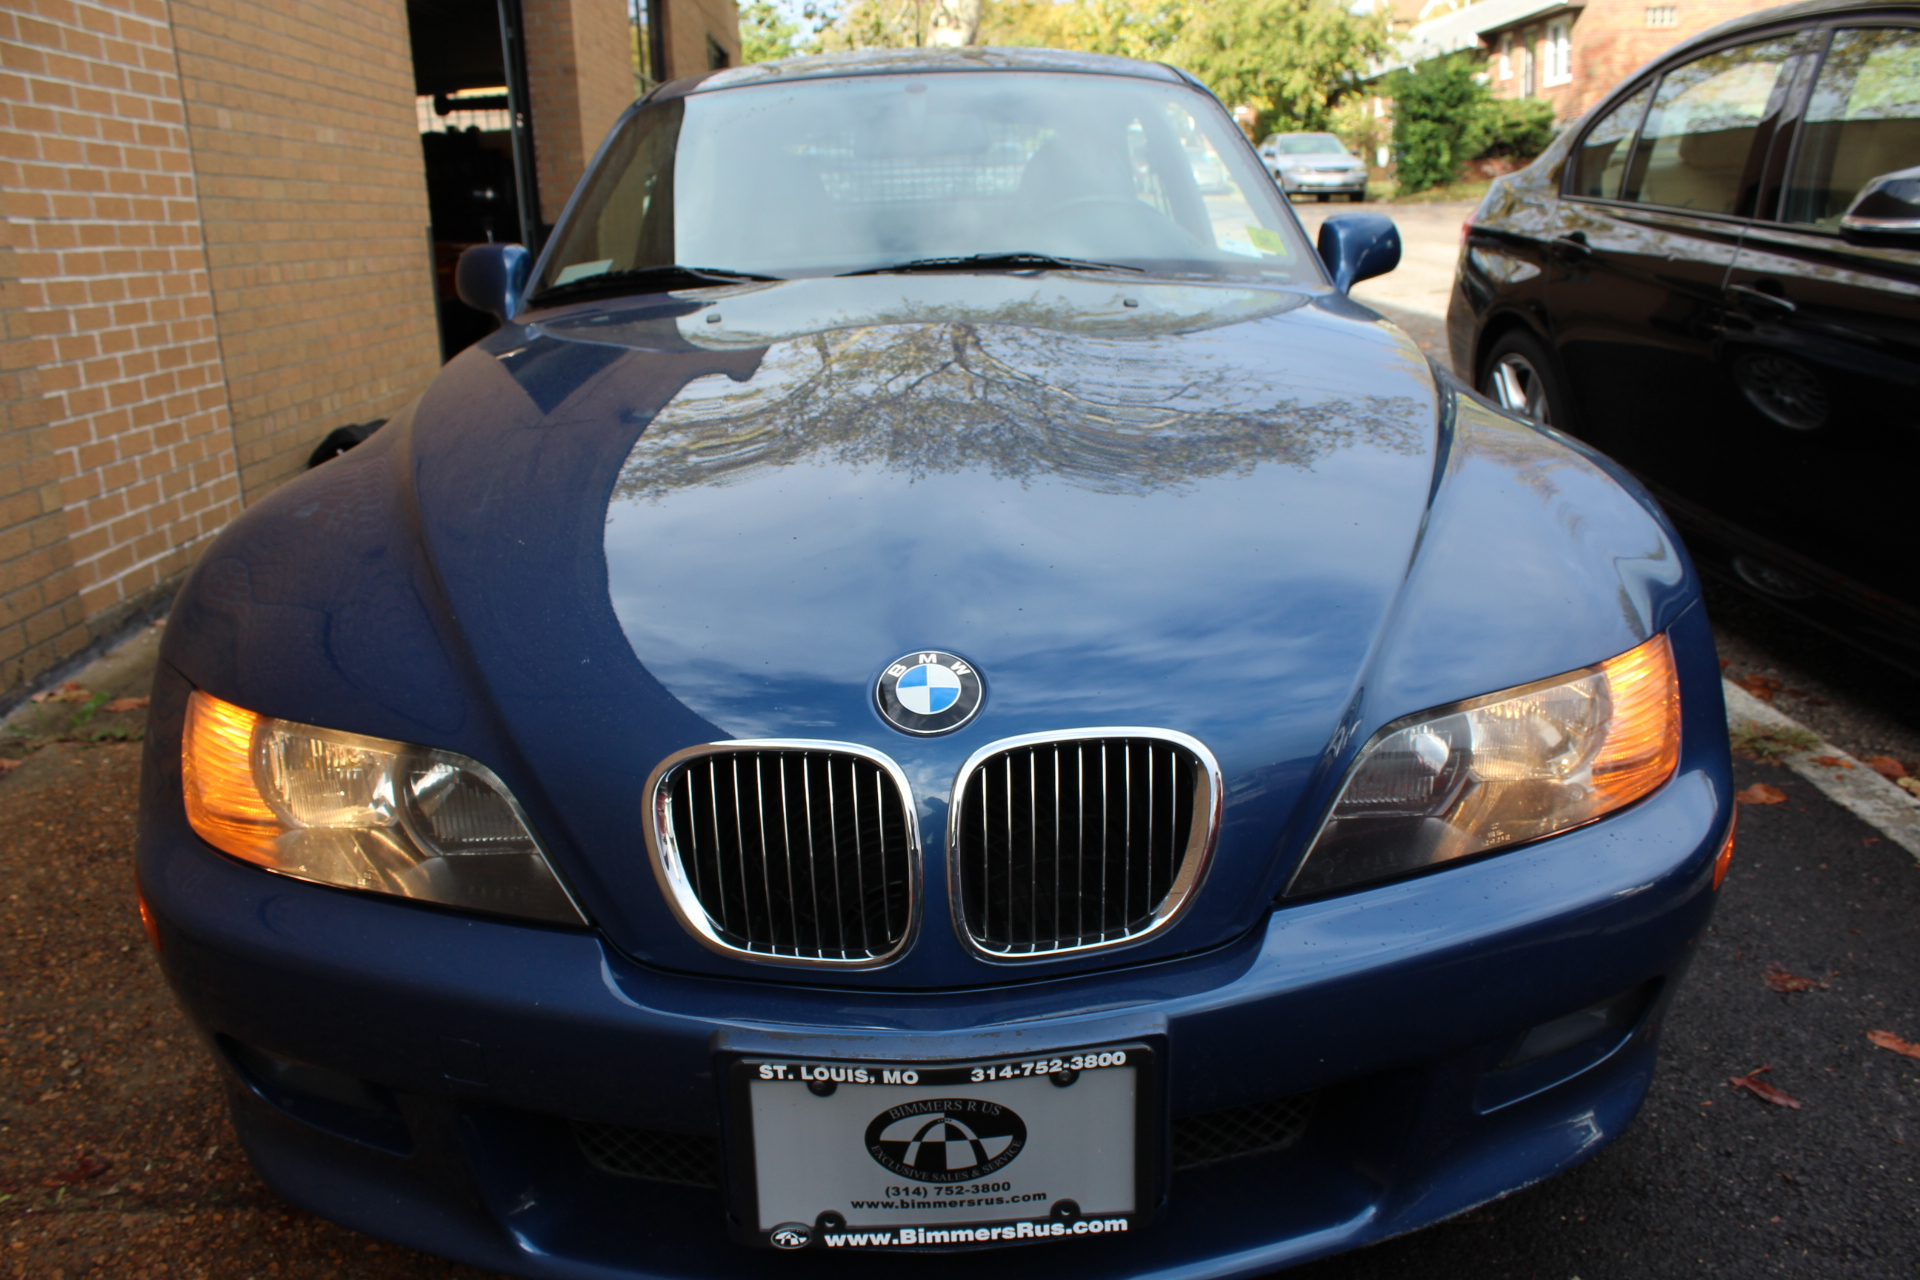 fed news img st rock xpel paint invisible protection bmw film louis chip